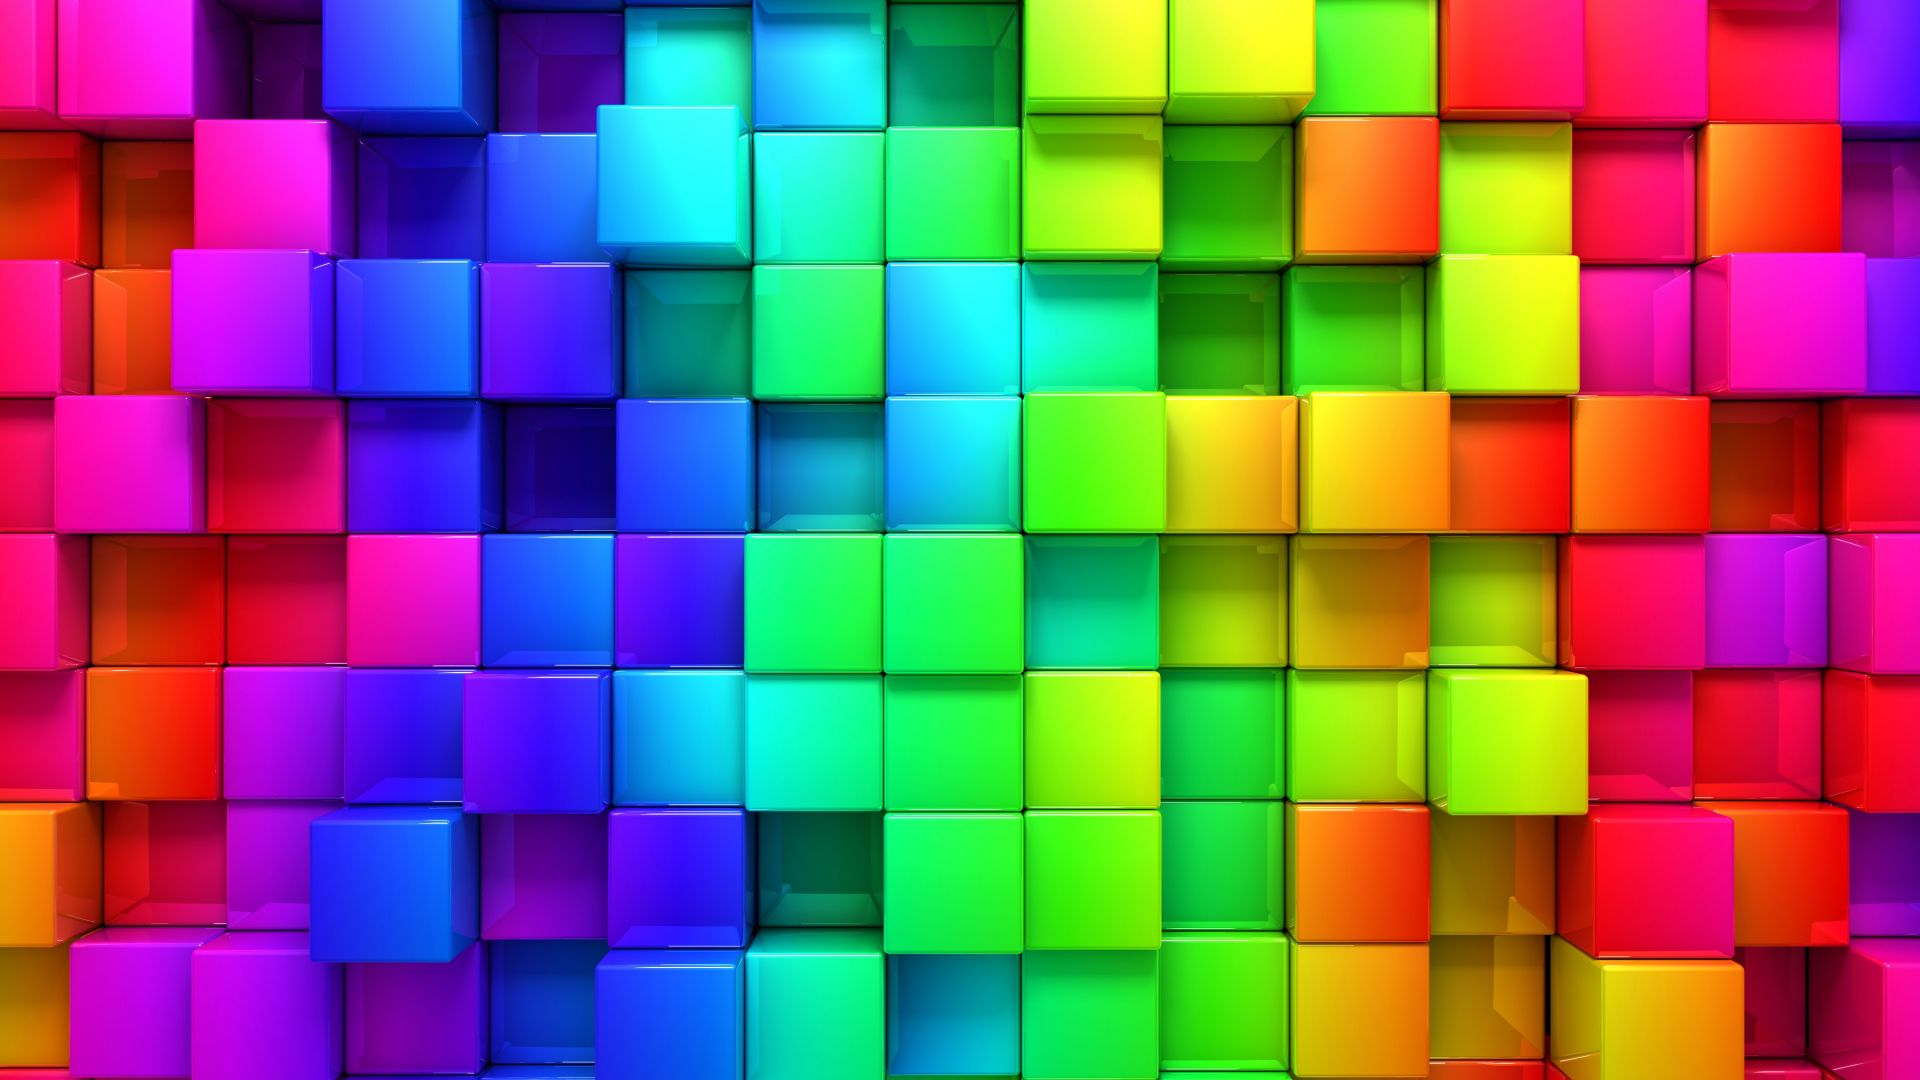 абстракт, квадраты, 4k, 5k, iPhone обои, андроид обои, cube, blocks, 4k, 5k, 3d, iphone wallpaper, android wallpaper, rainbow, abstract (horizontal)